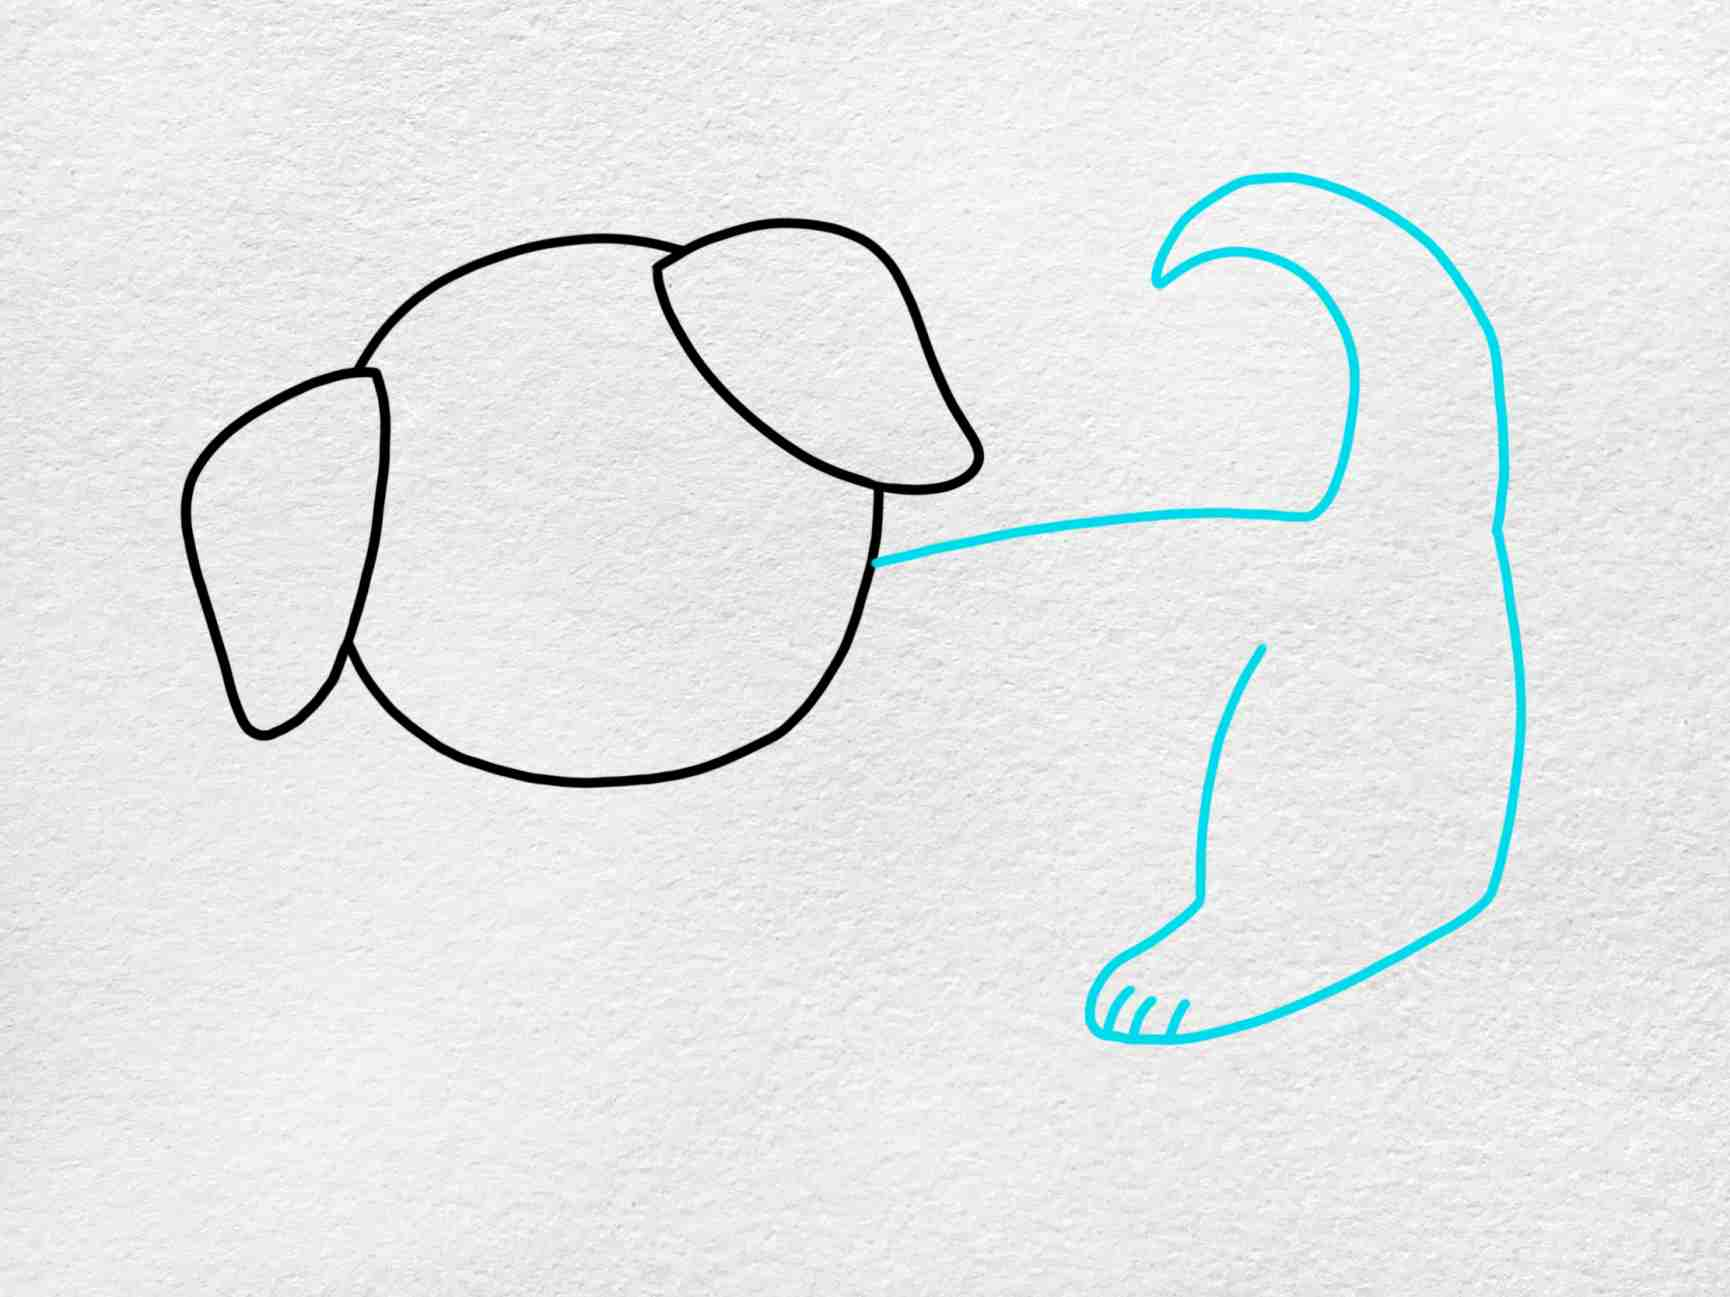 How To Draw A Puppy Step By Step: Step 3